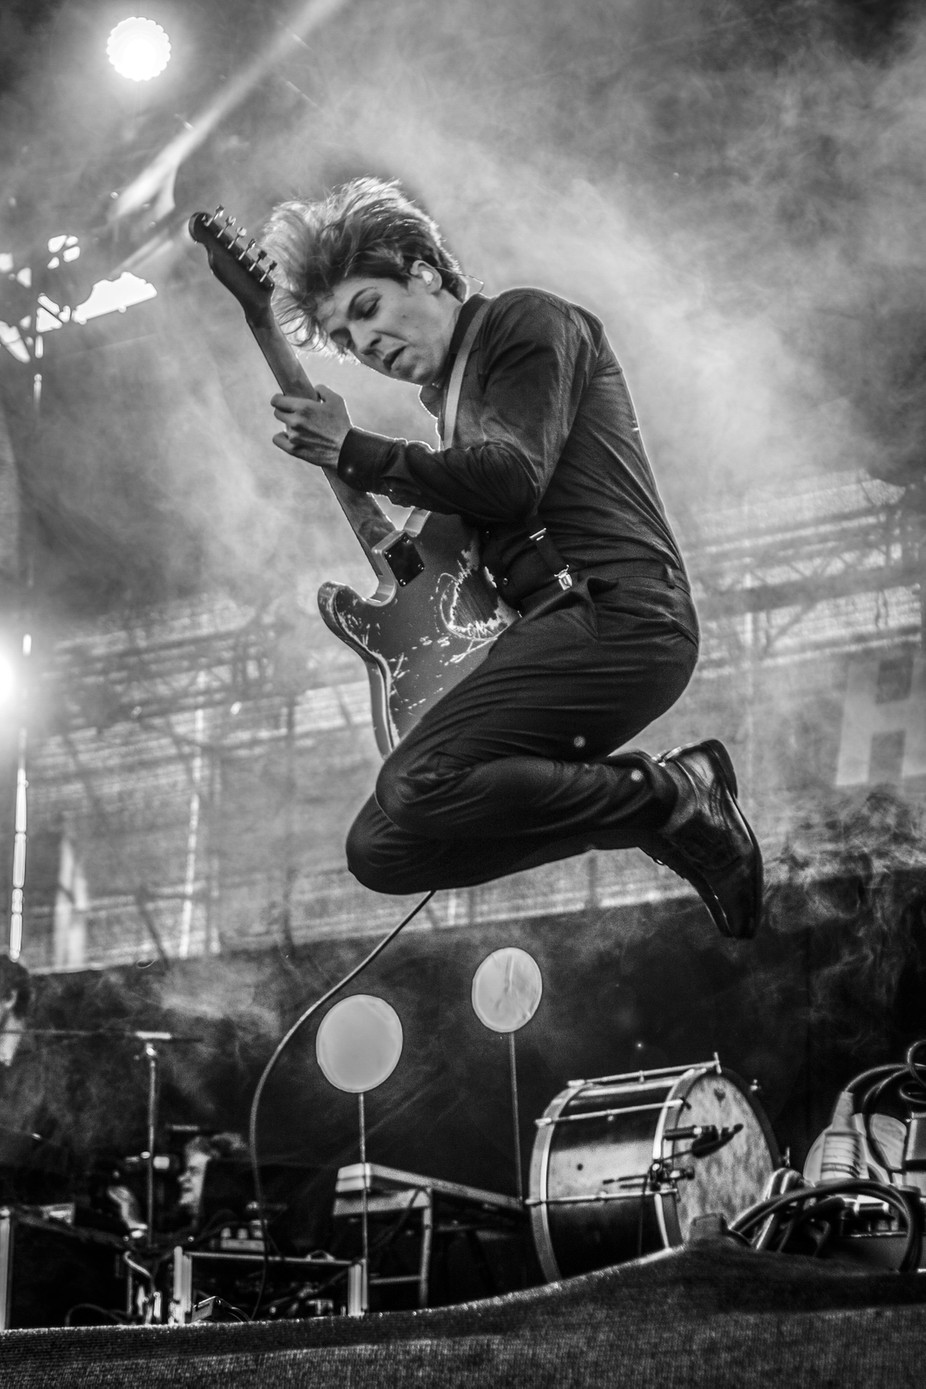 Rockin it by David_Martinez - Music And Concerts Photo Contest